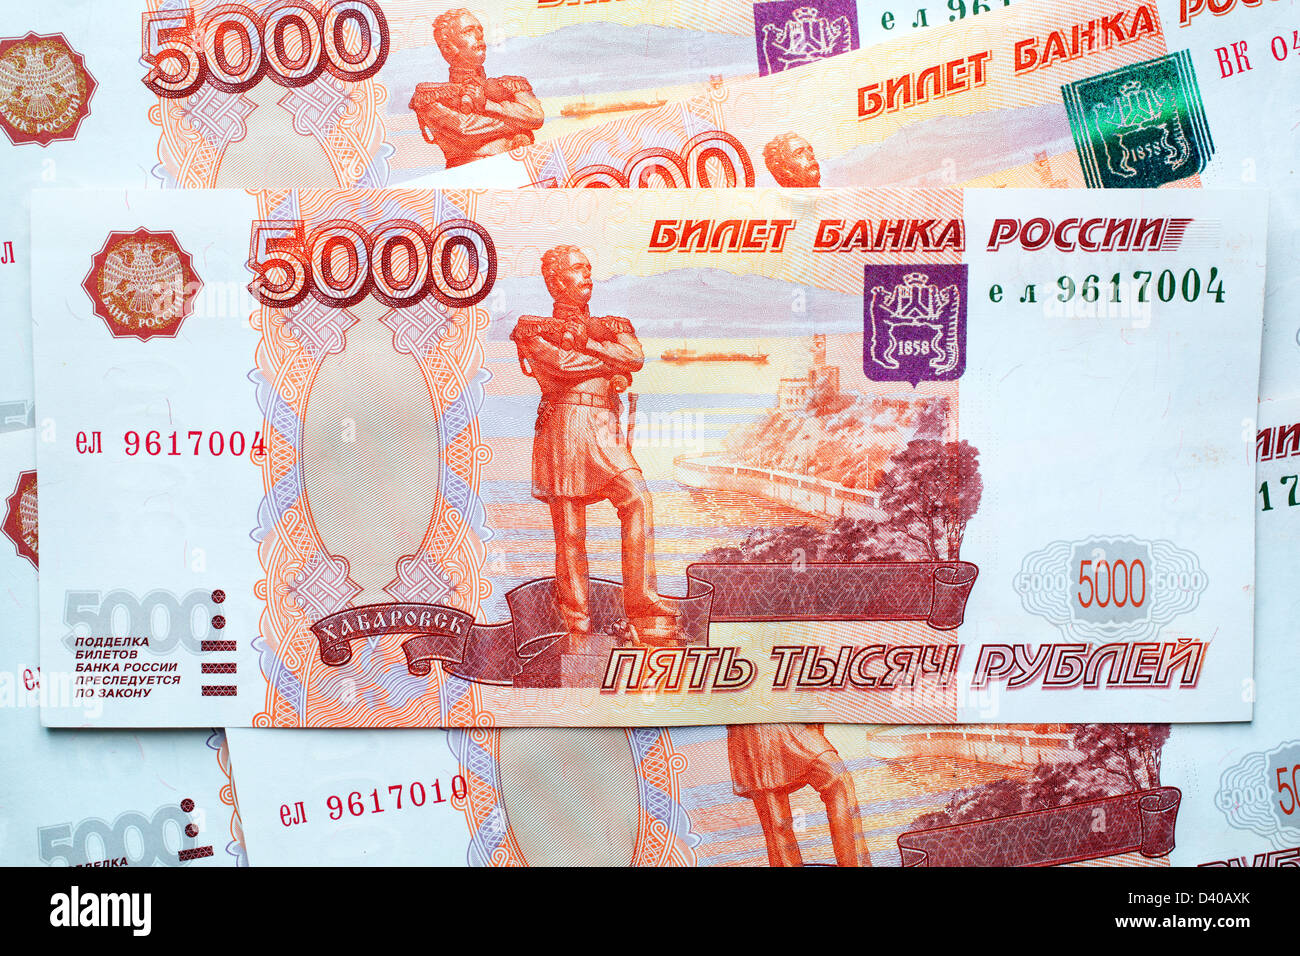 5000 Rubles banknotes, Monument to Nikolay Muravyov-Amursky in Khabarovsk, Russia, 2010 - Stock Image